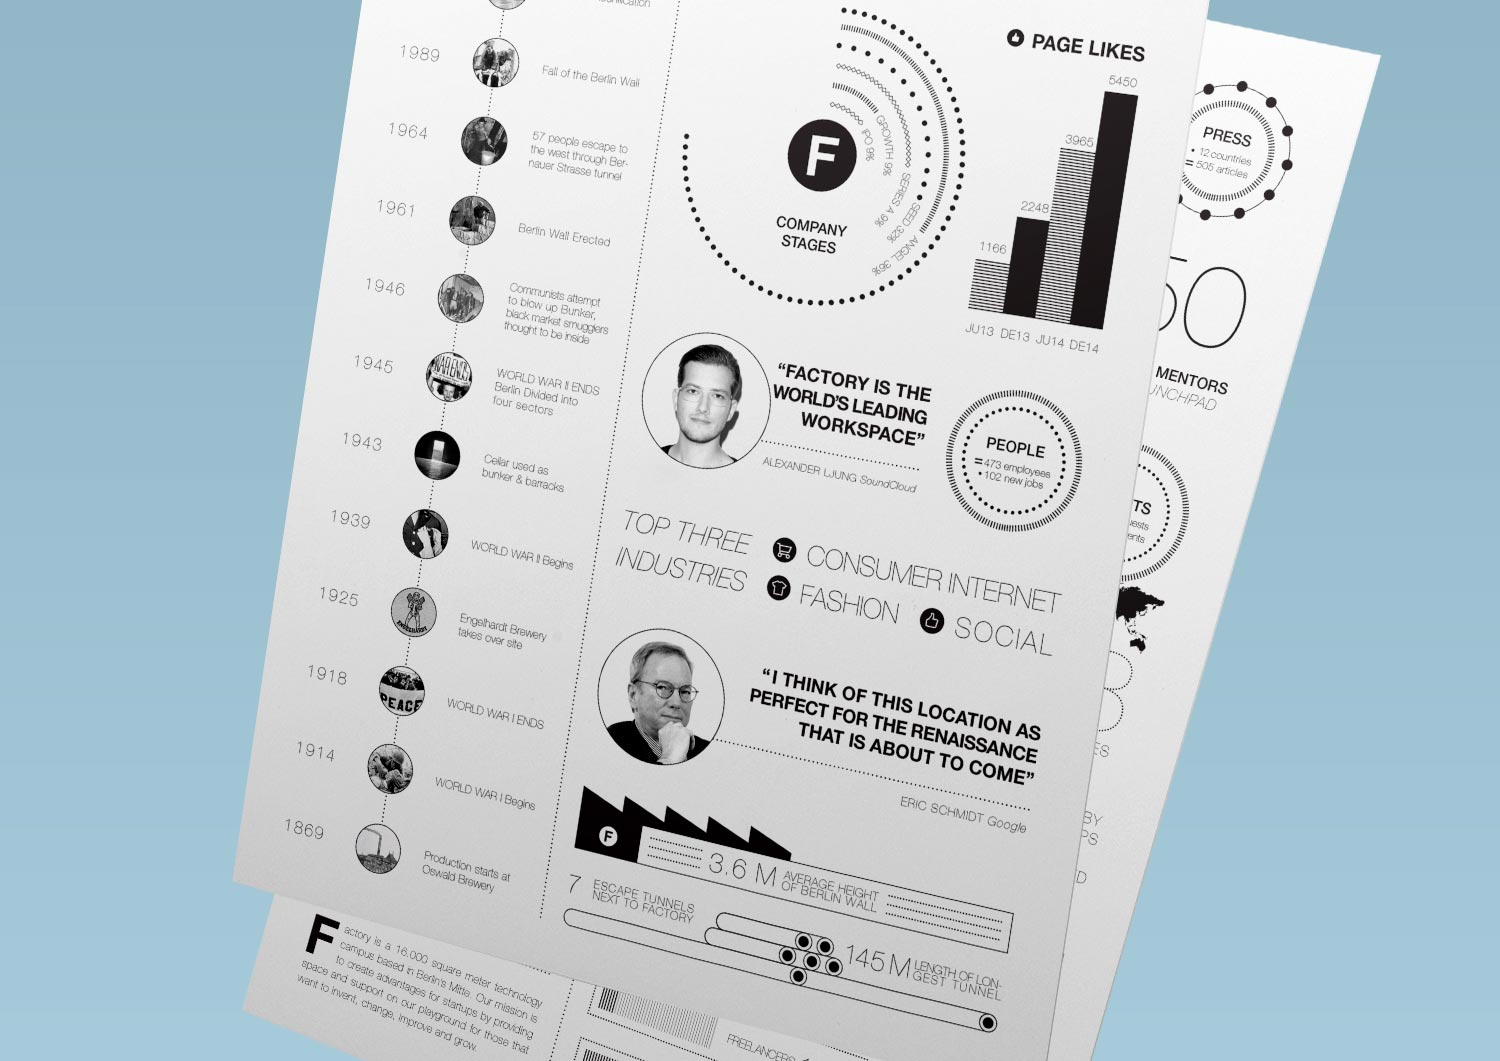 Manuel Astorga infographic design studio